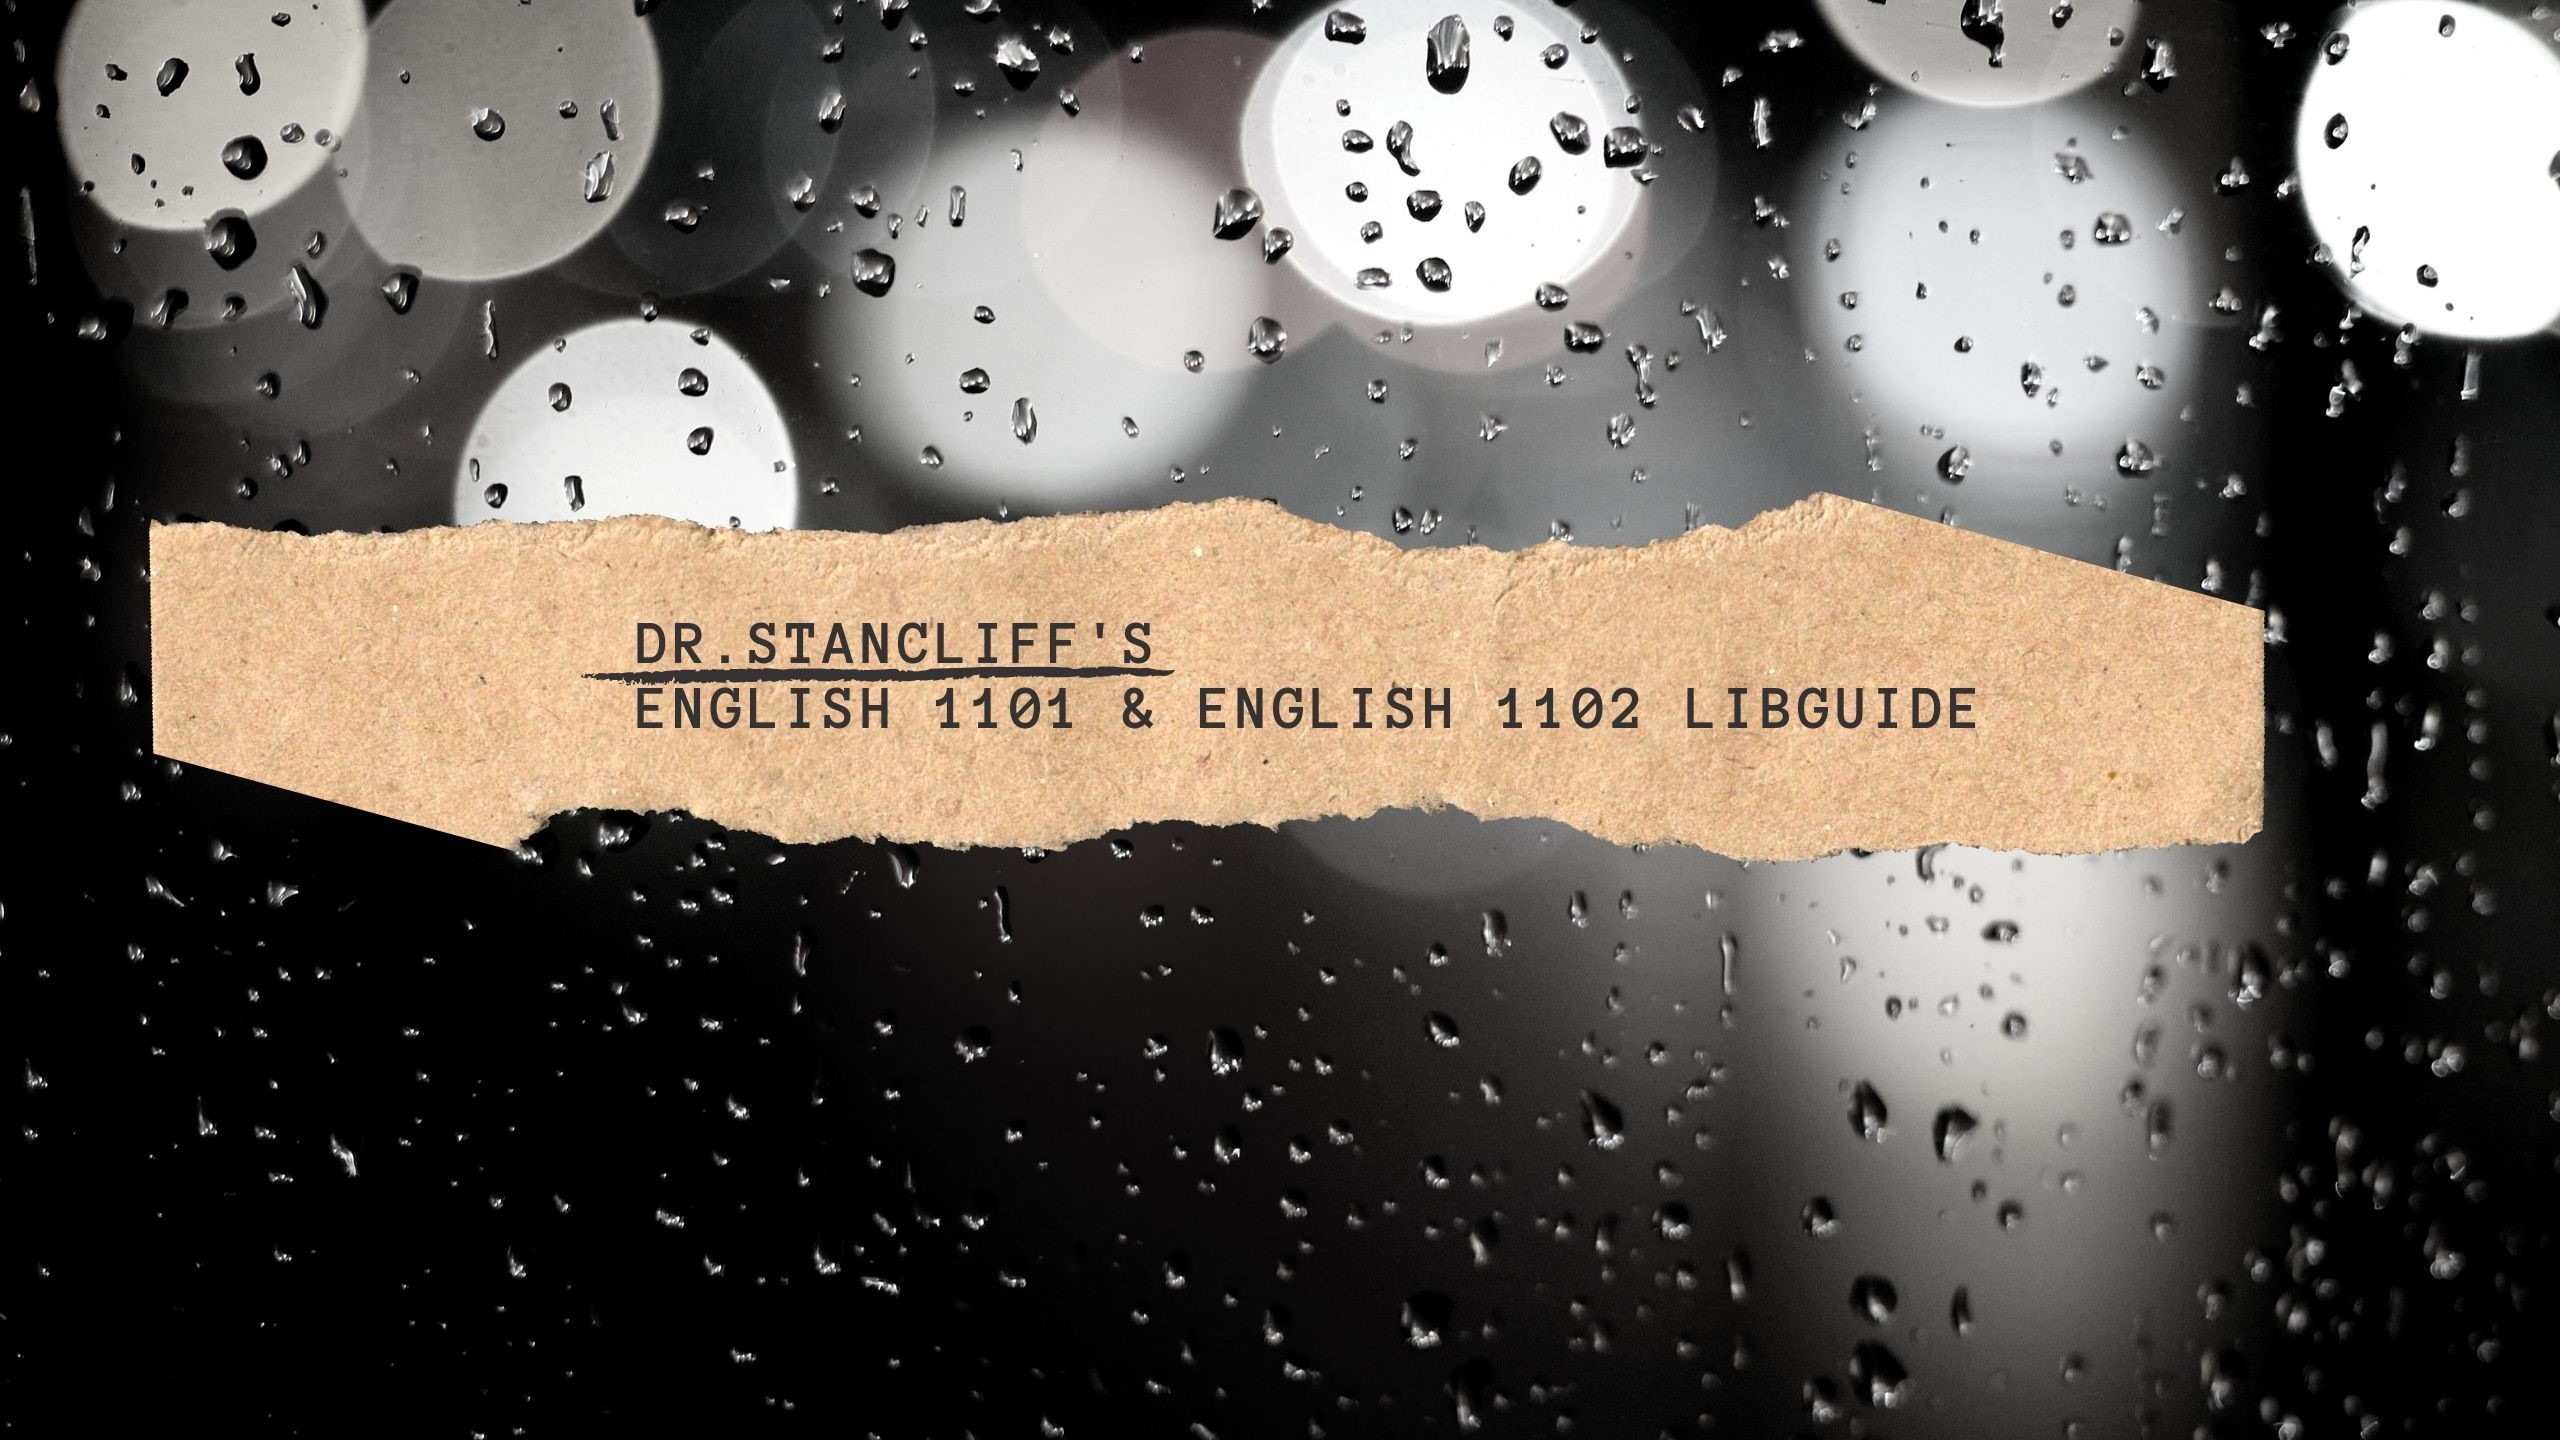 Dr. Stancliff's English 1101 & English 1102